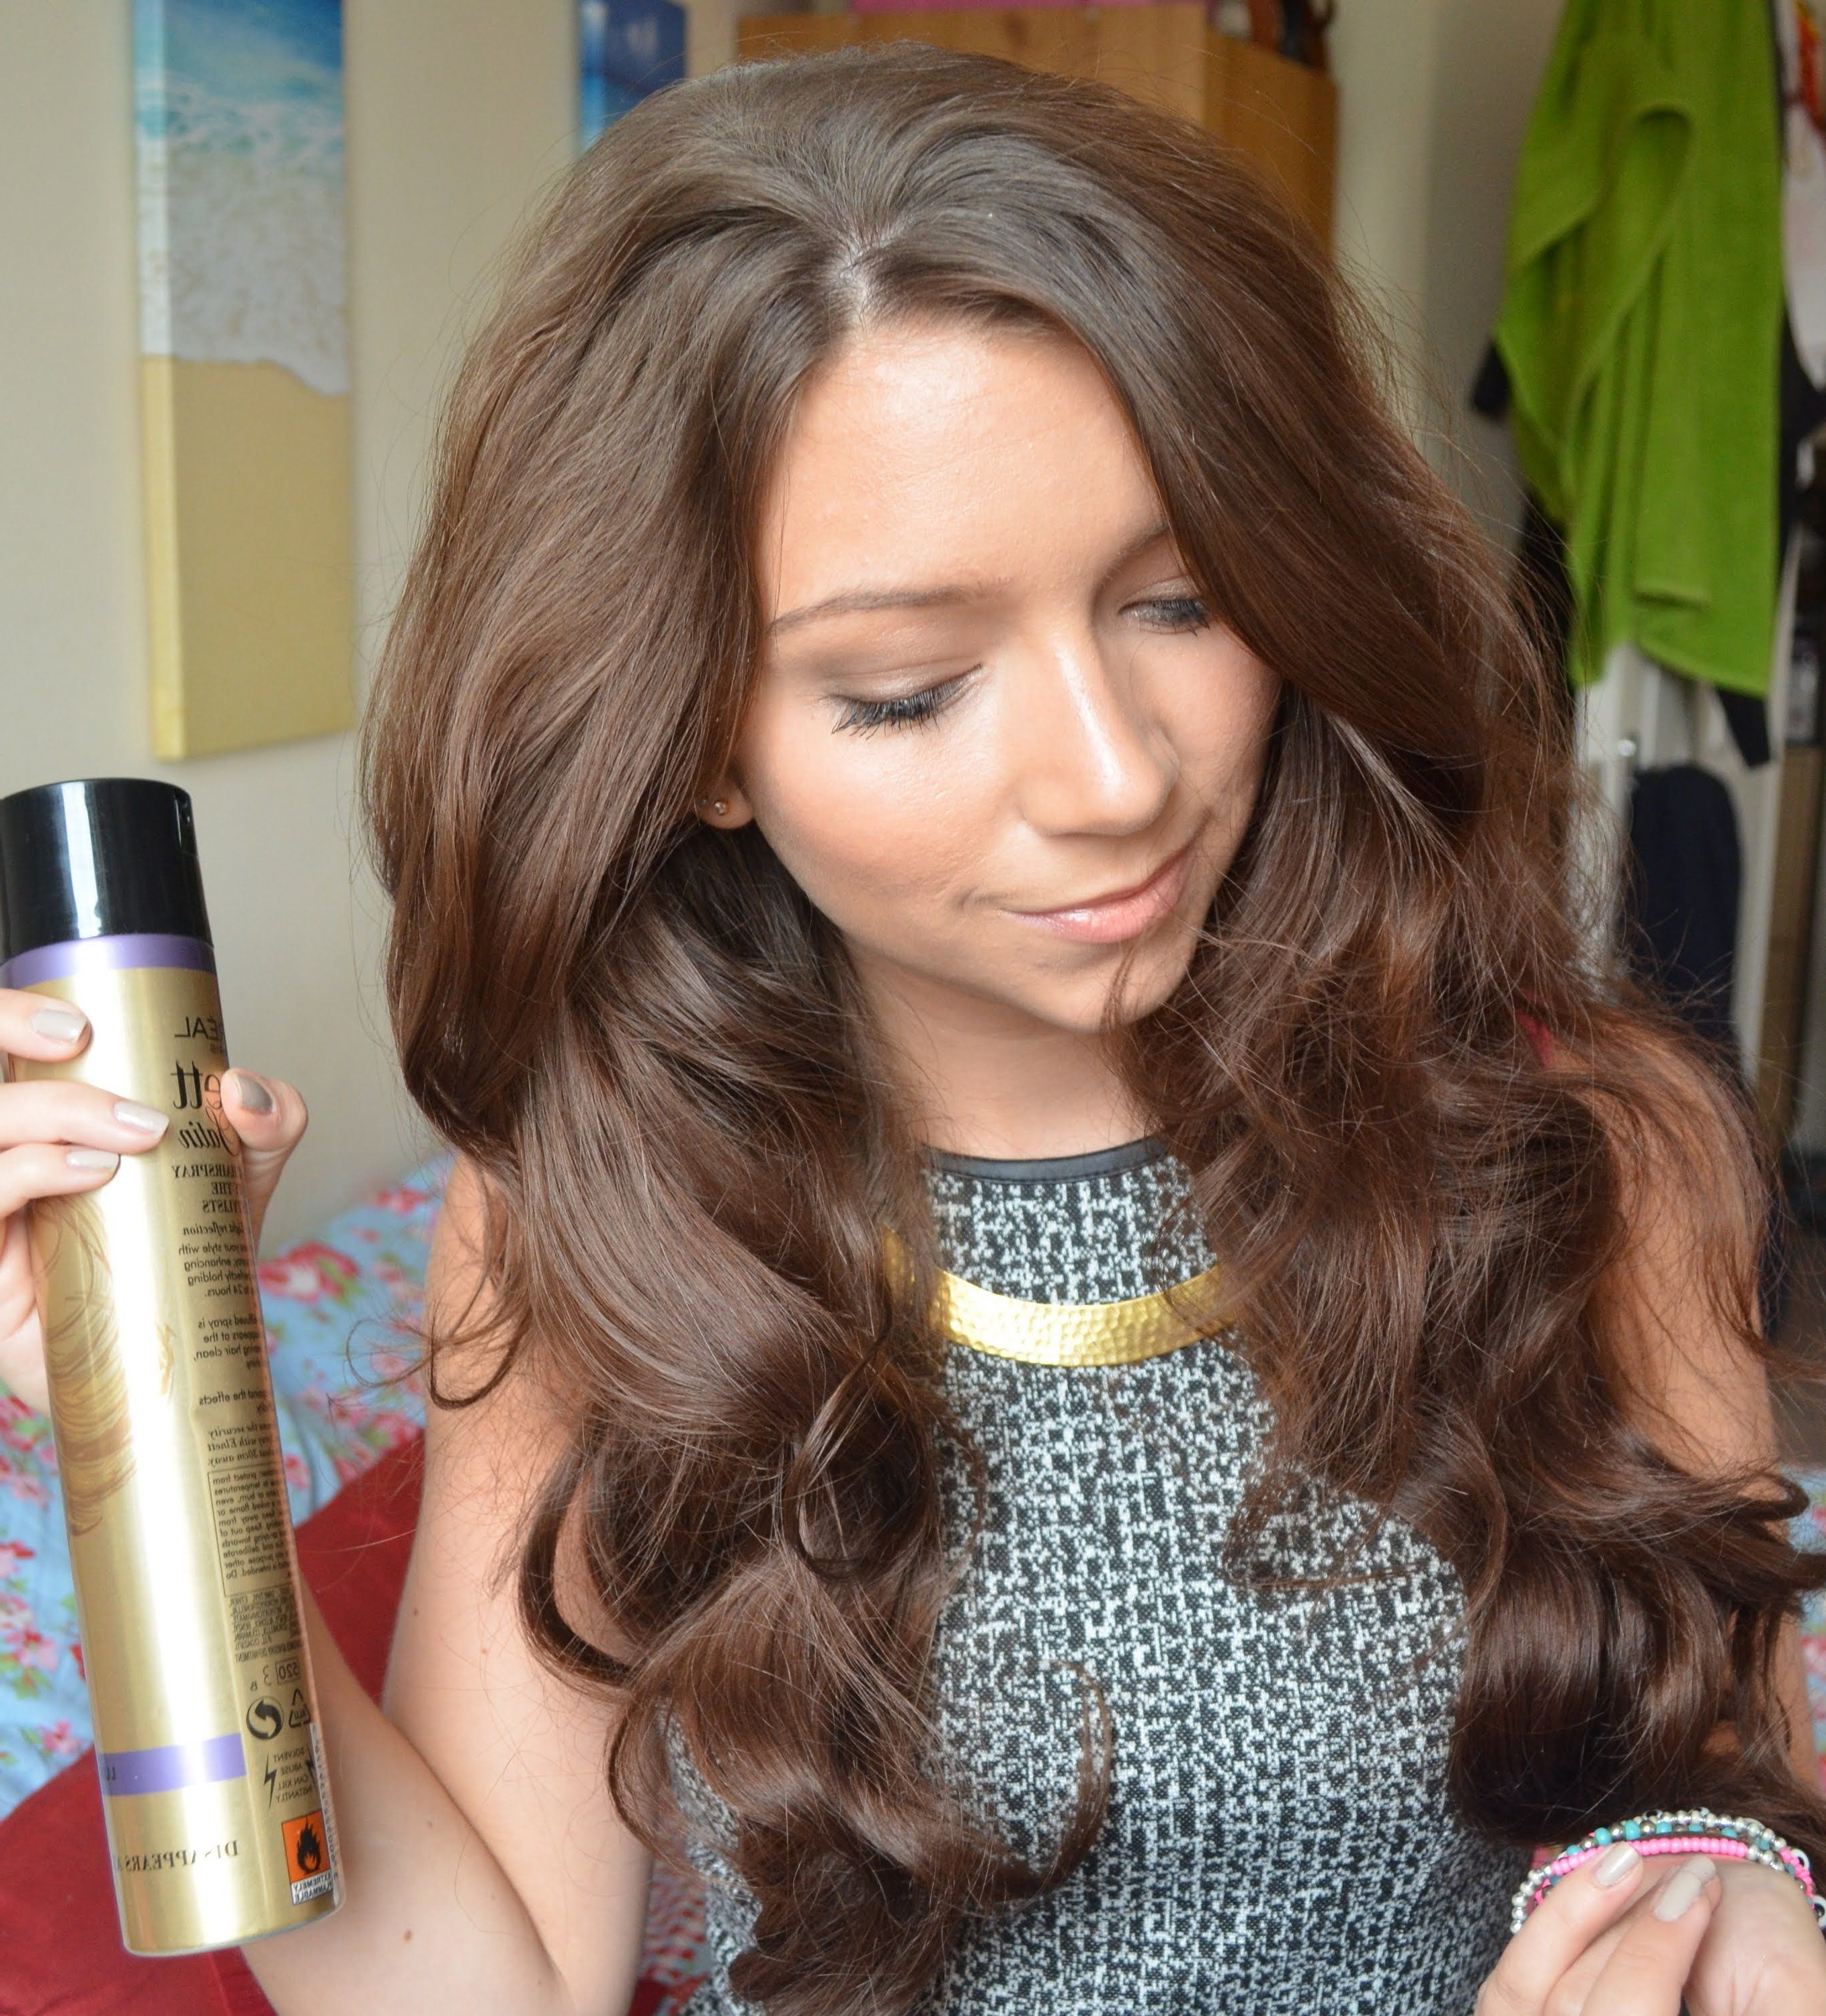 Big Wavy Hair Tutorial – Definitely Getting Some Hot Rollers Pertaining To Widely Used Large Hair Rollers Bridal Hairstyles (View 9 of 20)